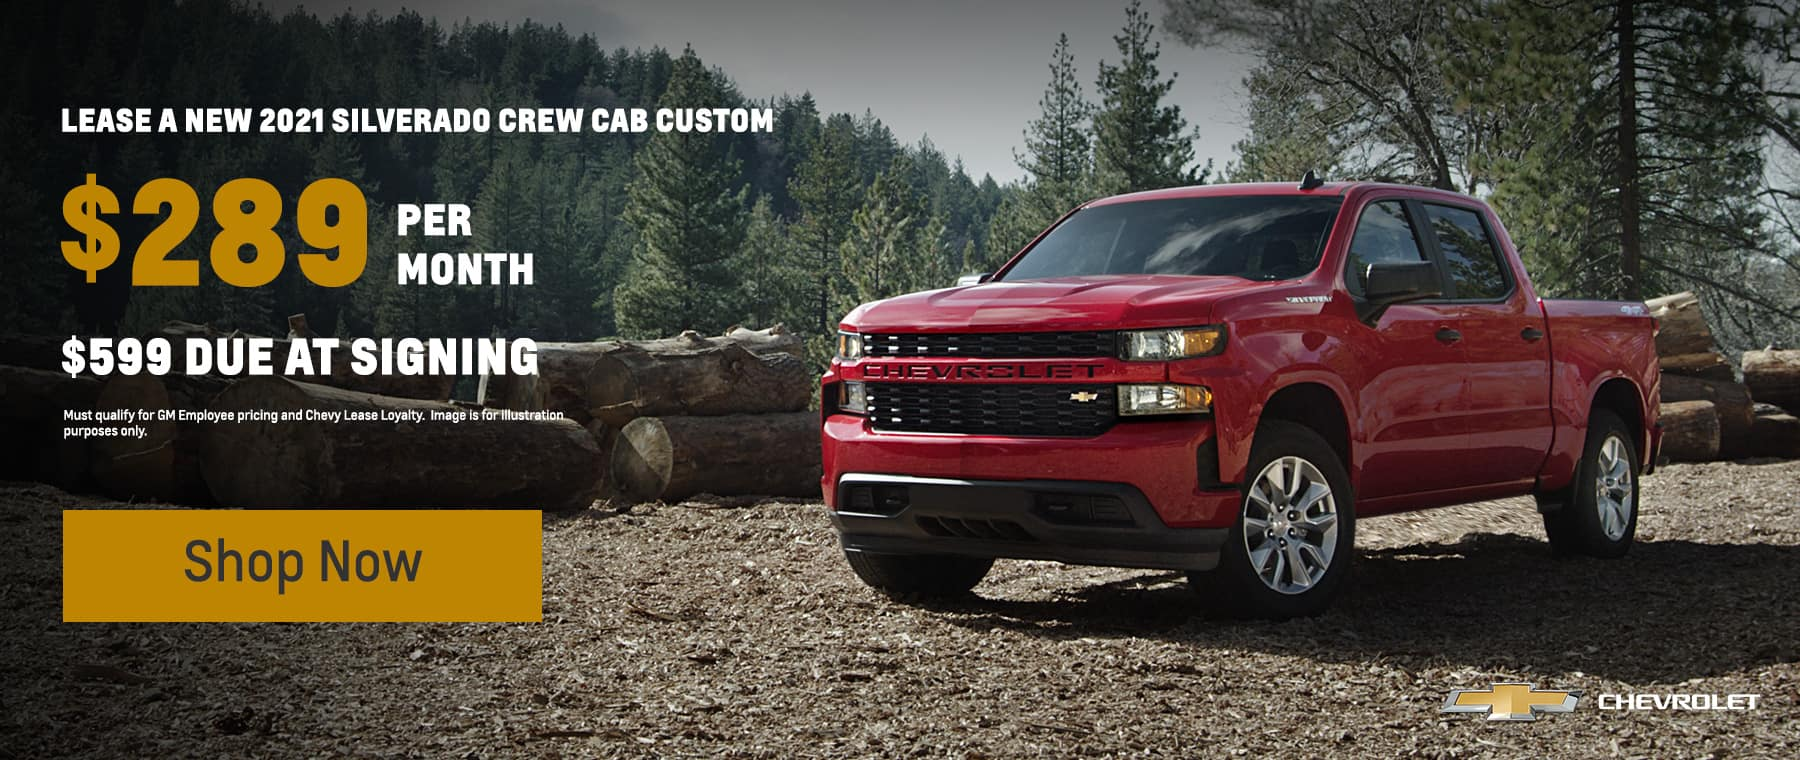 2021 Silverado Crew Custom $289 with $599 due at signing 24 months, 10k